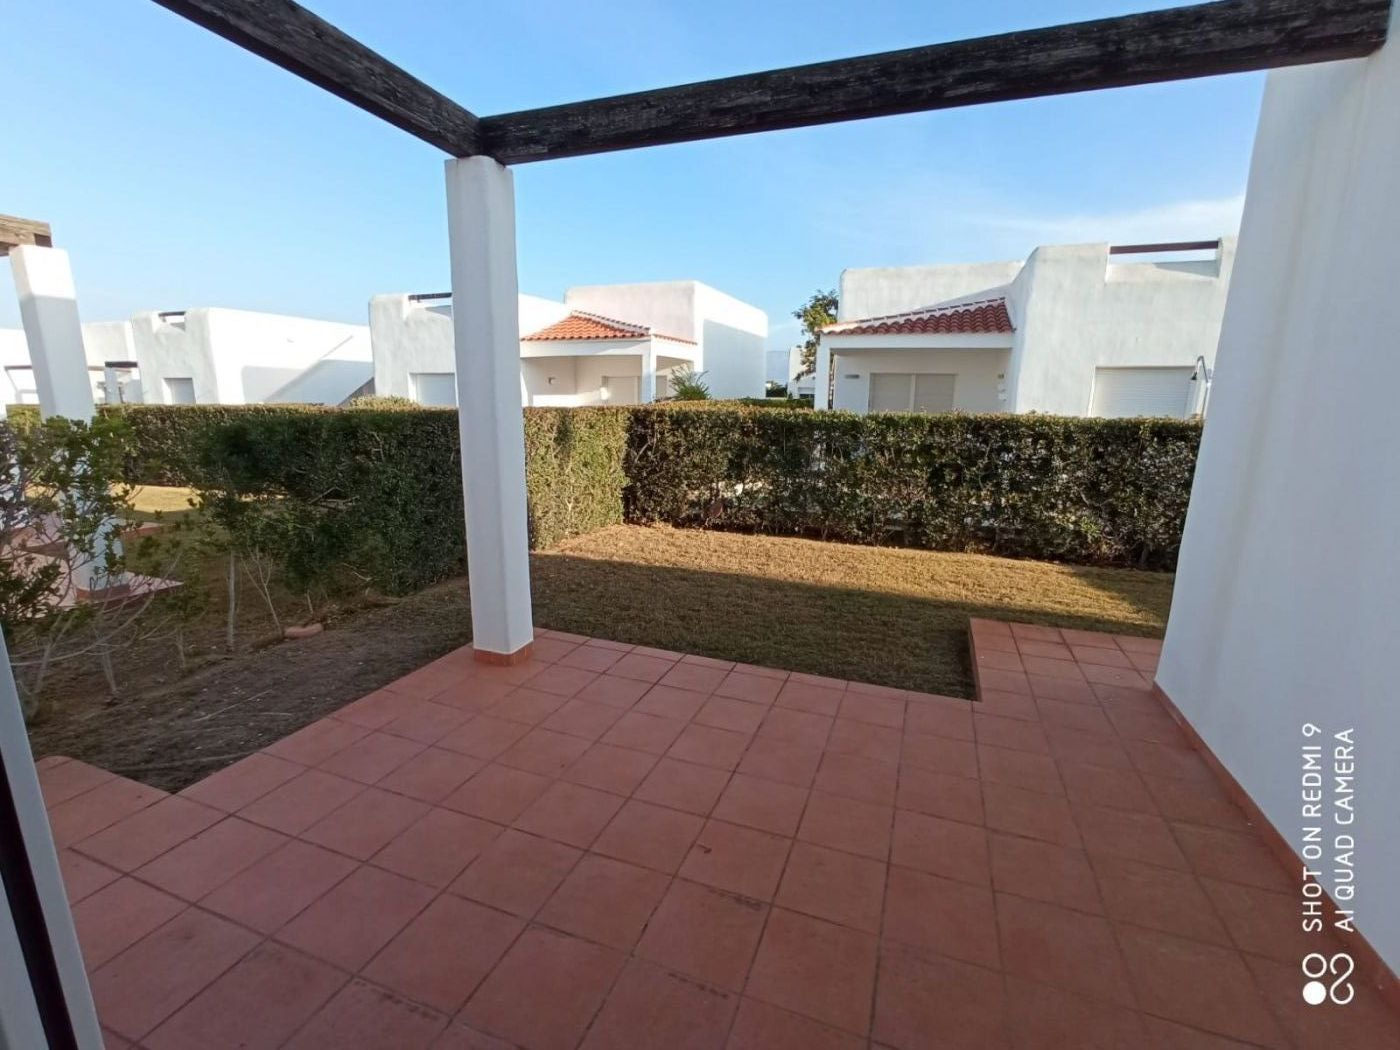 Gallery Image 2 of Villa Jana in need of some TLC for sale at bargain price